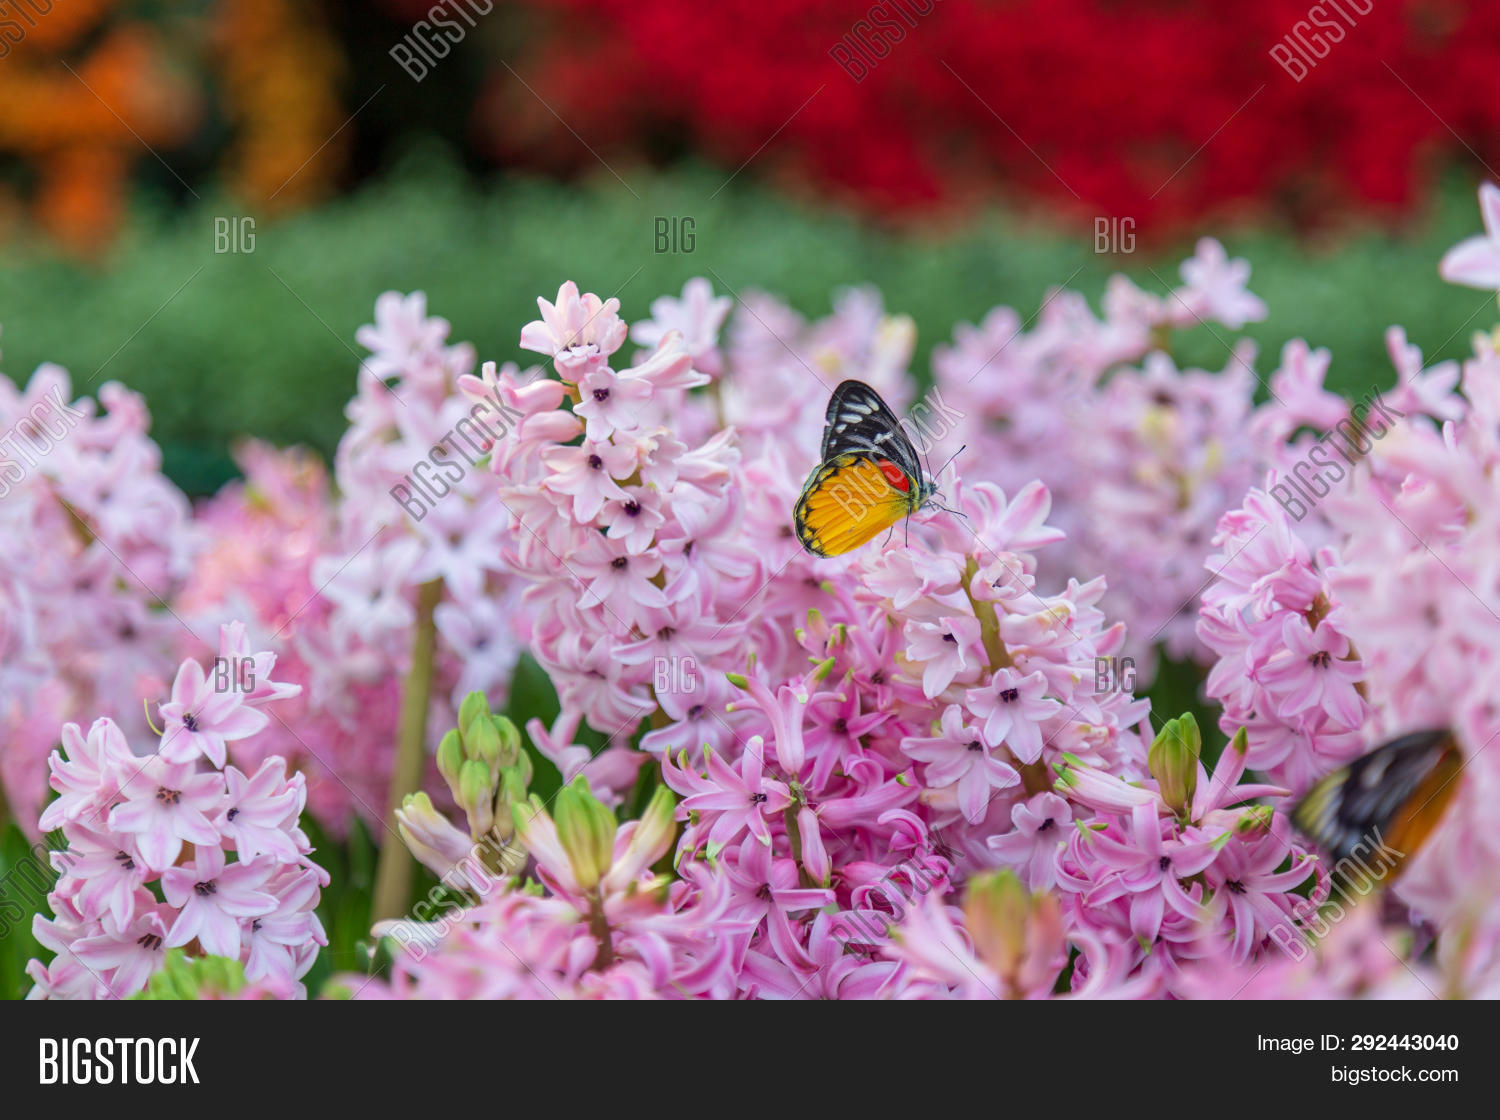 agriculture,aroma,asparagaceae,background,beautiful,beauty,bloom,blooming,blossom,botanical,botany,bouquet,branch,bunch,butterfly,close-up,color,colorful,decoration,elegance,flora,floral,flower,fragrant,fresh,freshness,garden,gardening,growth,hyacinth,hyacinthus,leaf,morning,name,natural,nature,outdoor,park,petal,pink,plant,plantae,season,seasonal,shiny,spring,springtime,sun,sunlight,vibrant